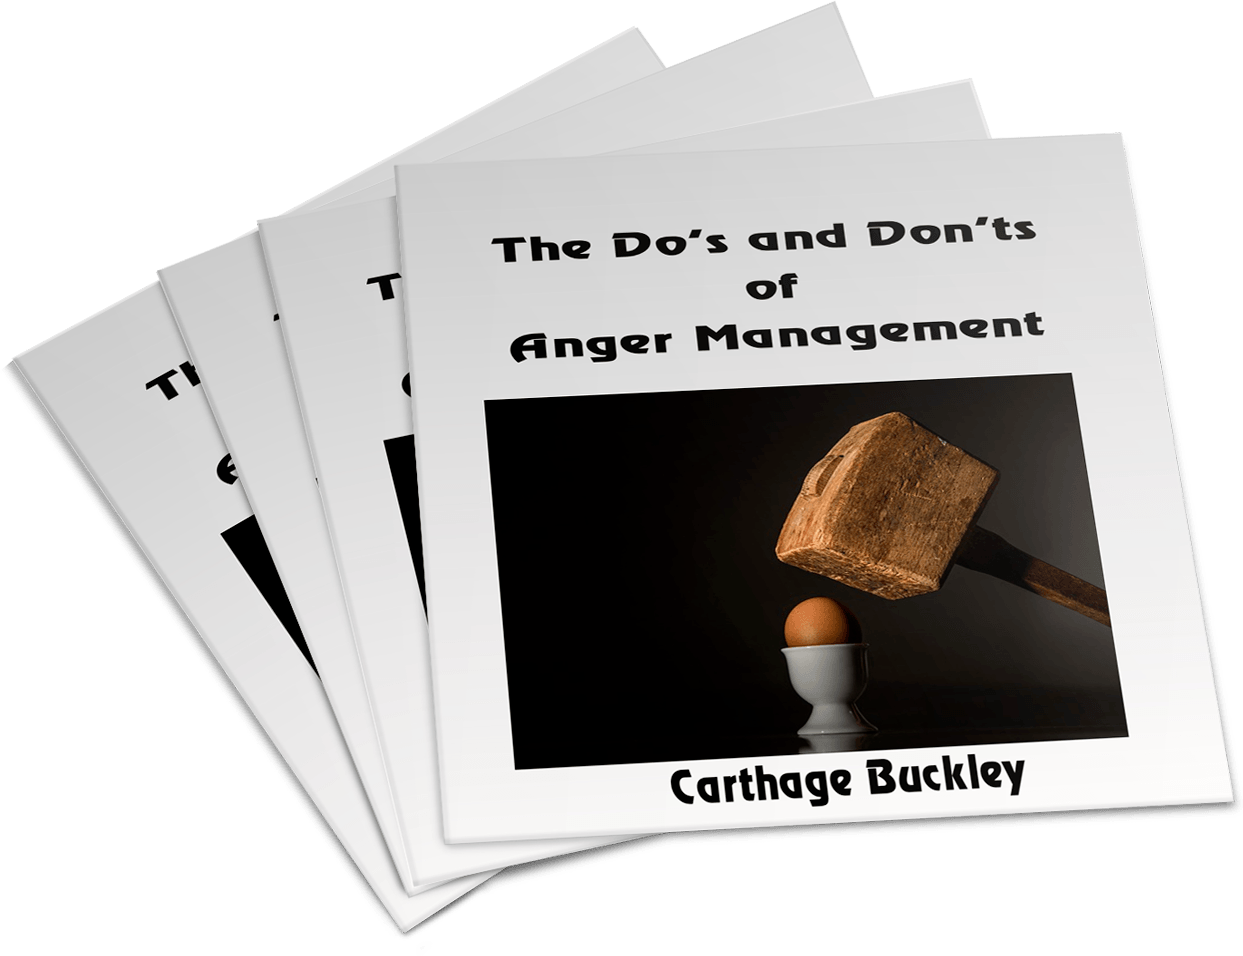 6 Strategies to respond to someone who is angry - liveyourtruestory com